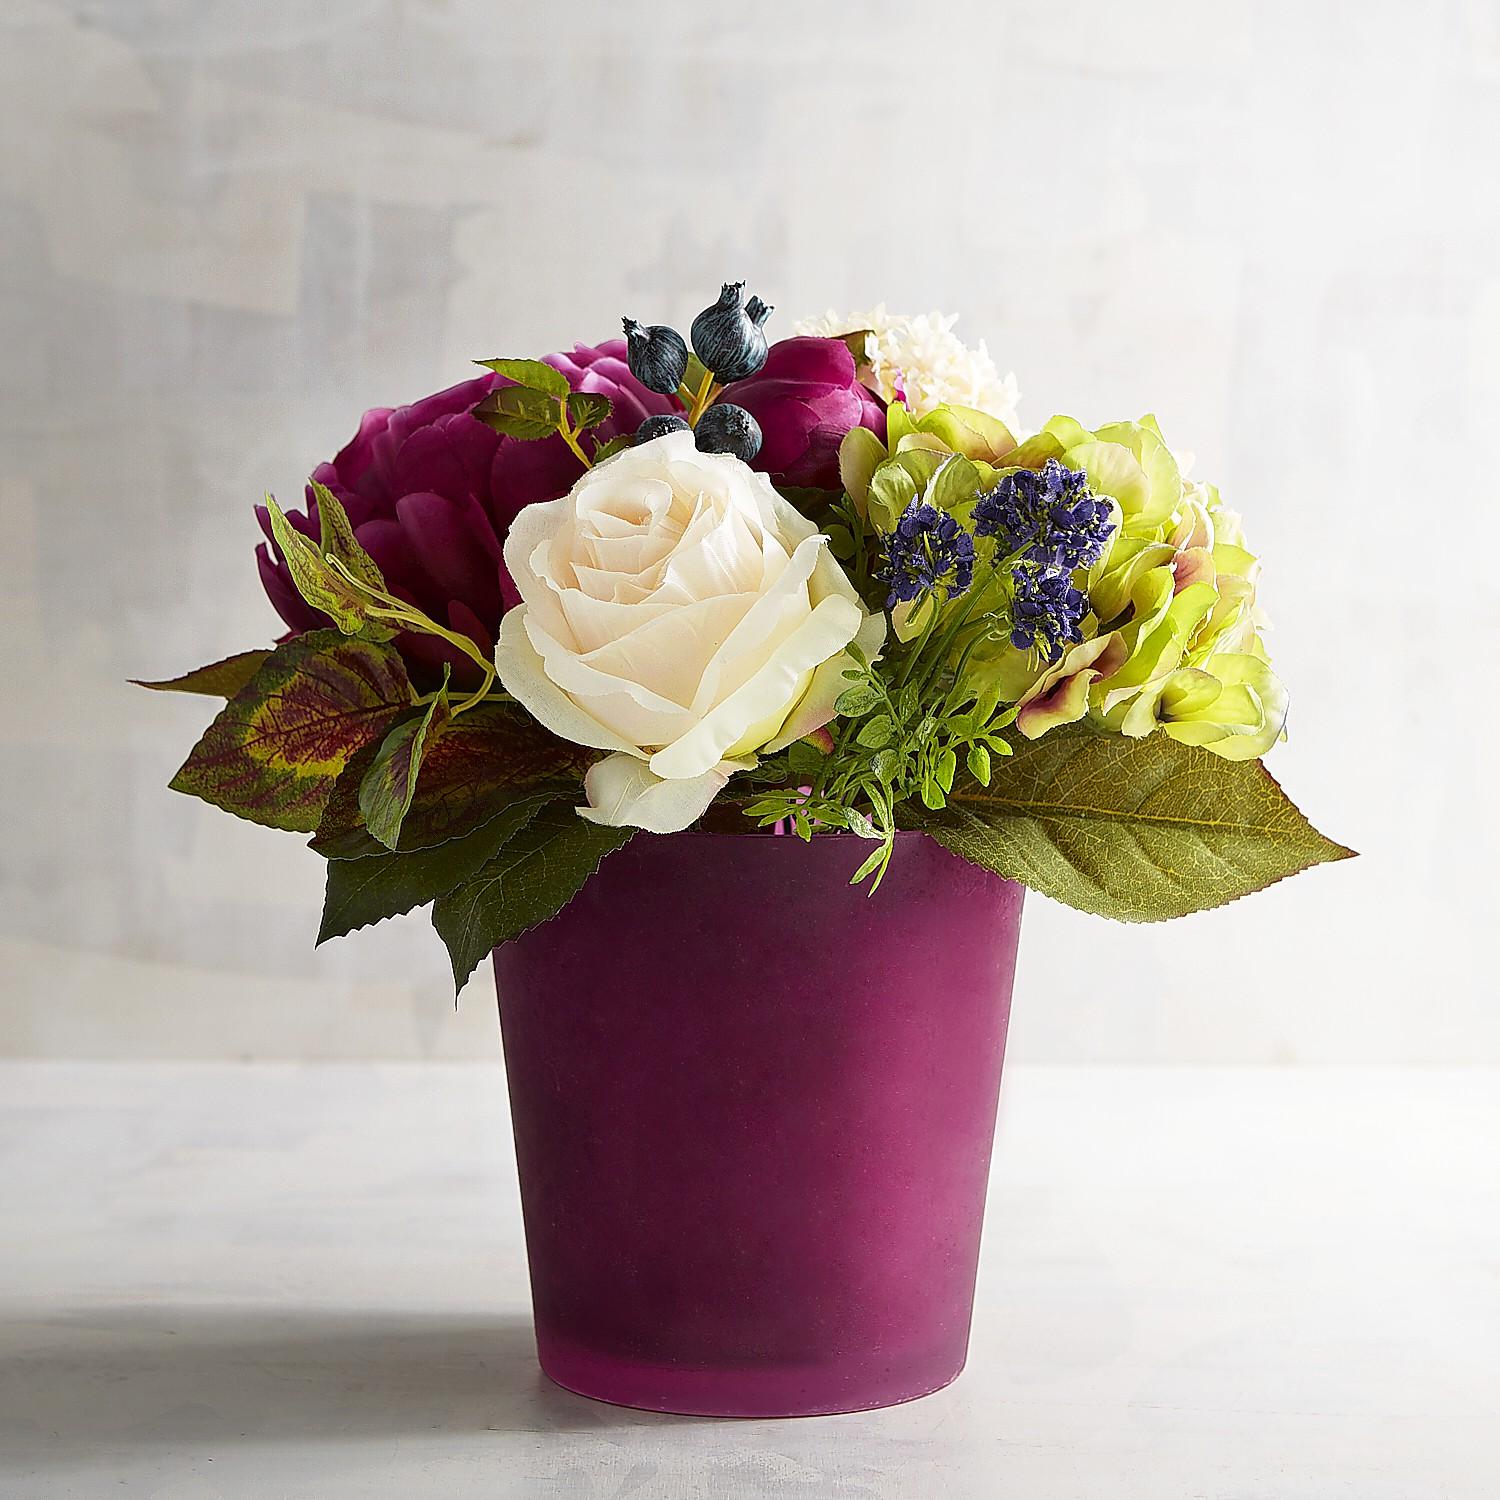 Faux Floral Arrangement in Magenta Glass Container